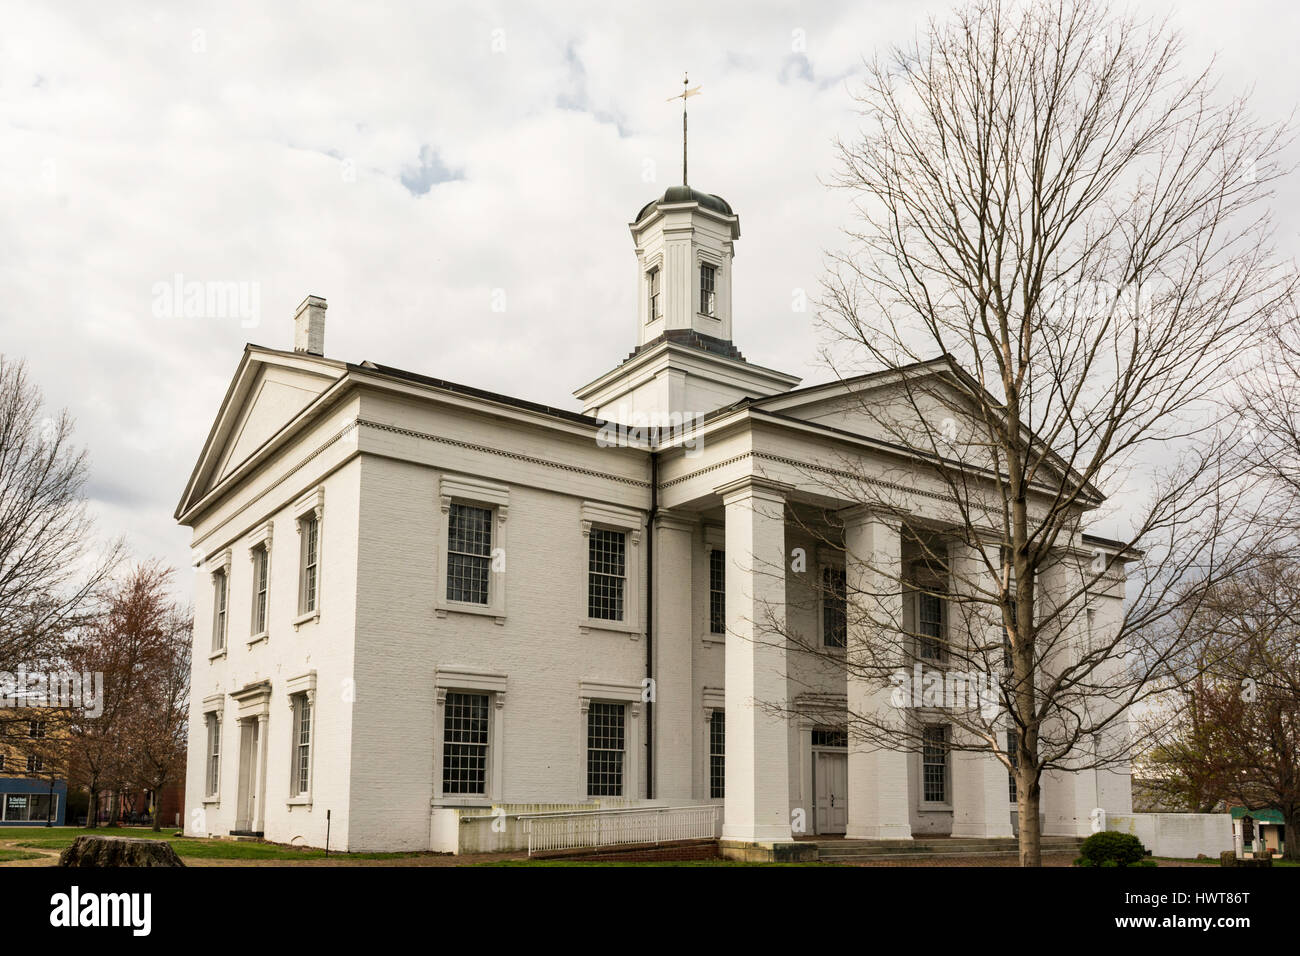 Oldest surviving Illinois State Capitol Building in Vandalia, IL. - Stock Image